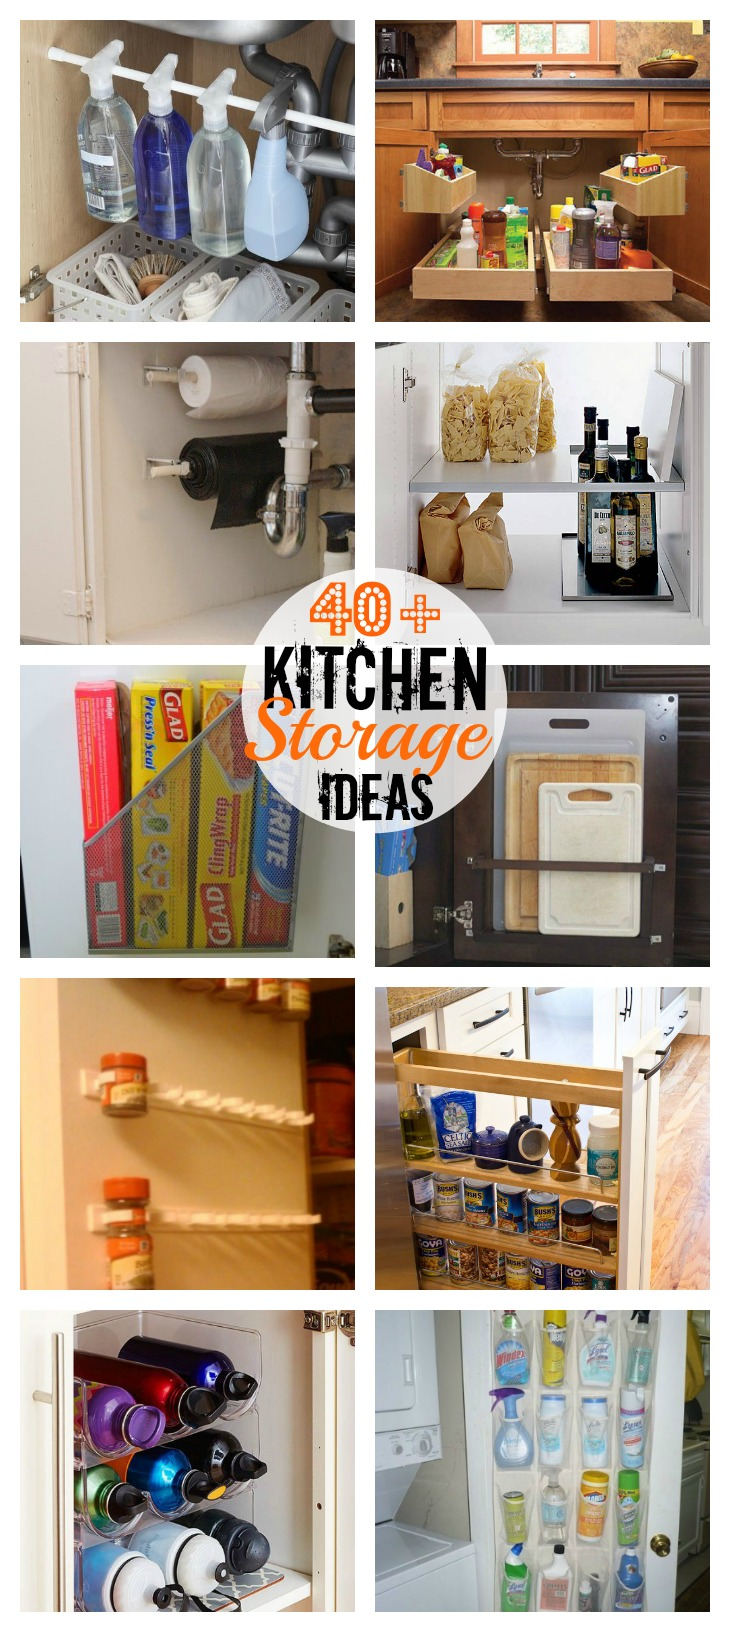 40 great kitchen storage ideas every woman should know for Great storage